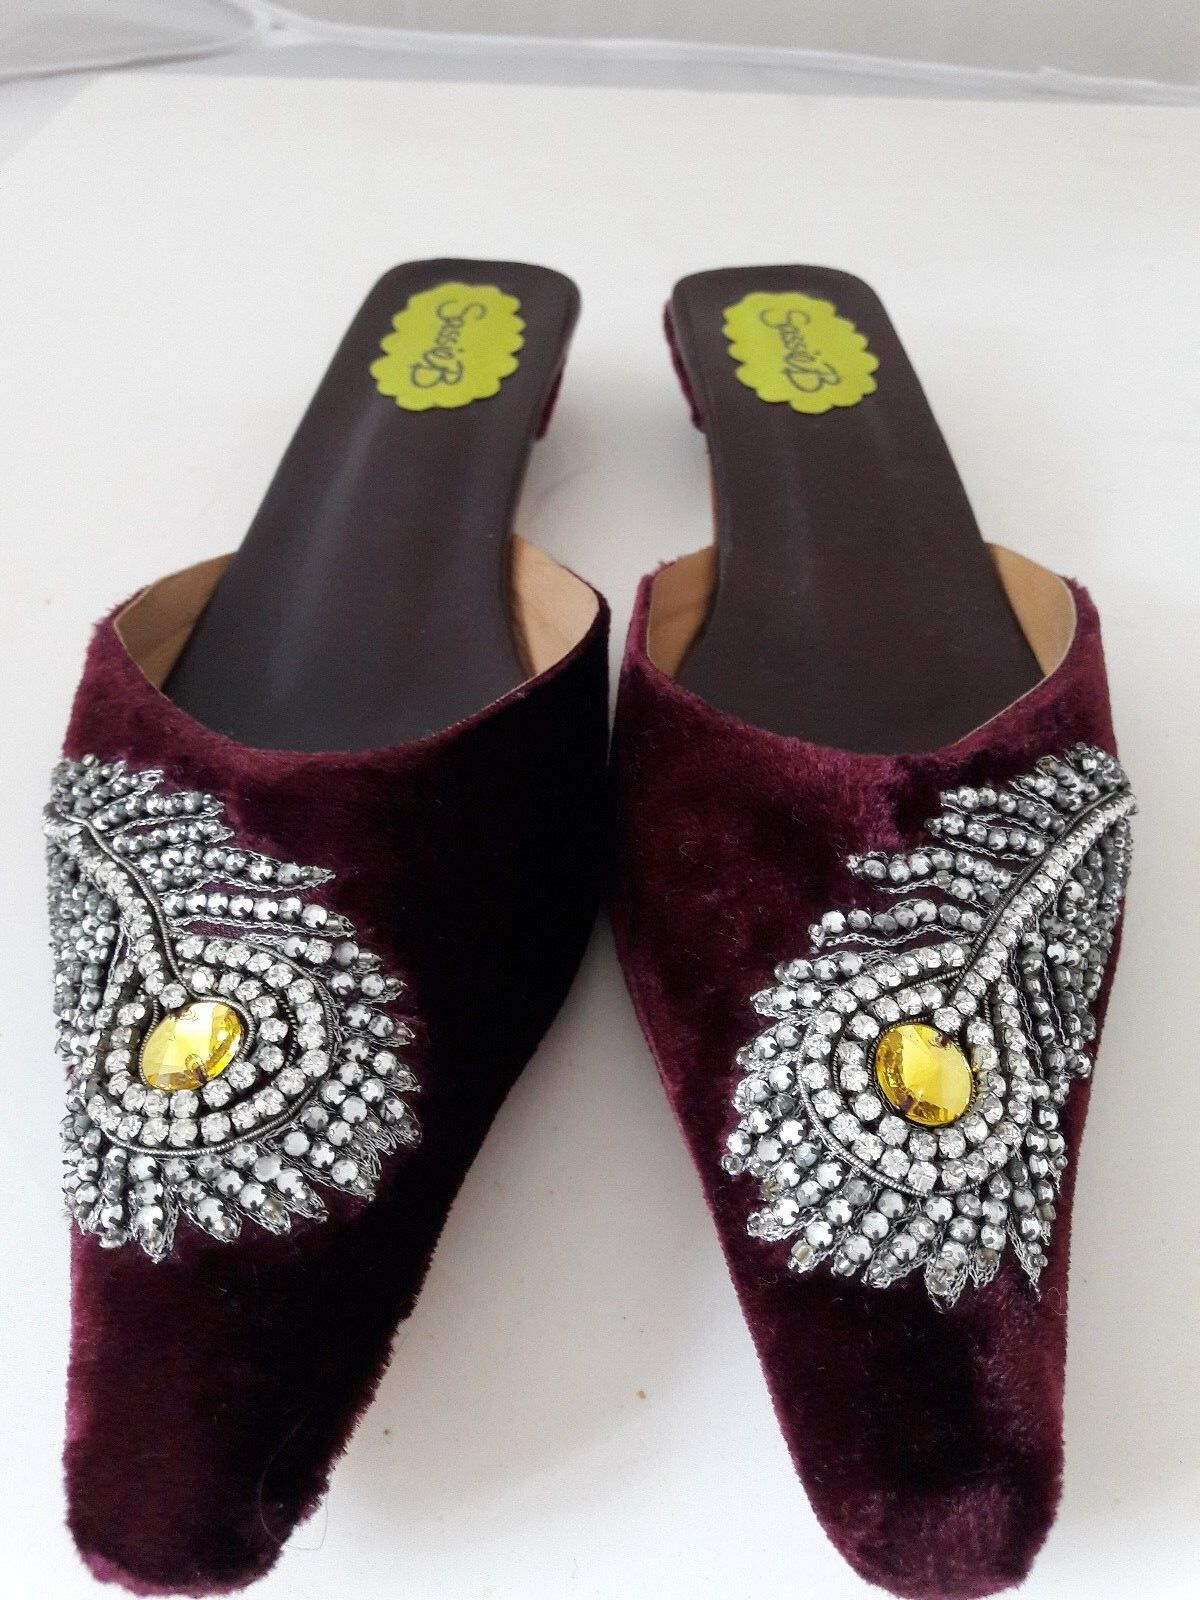 PURPLE M VELVET MULES with crystals  - Größe M PURPLE e01b69